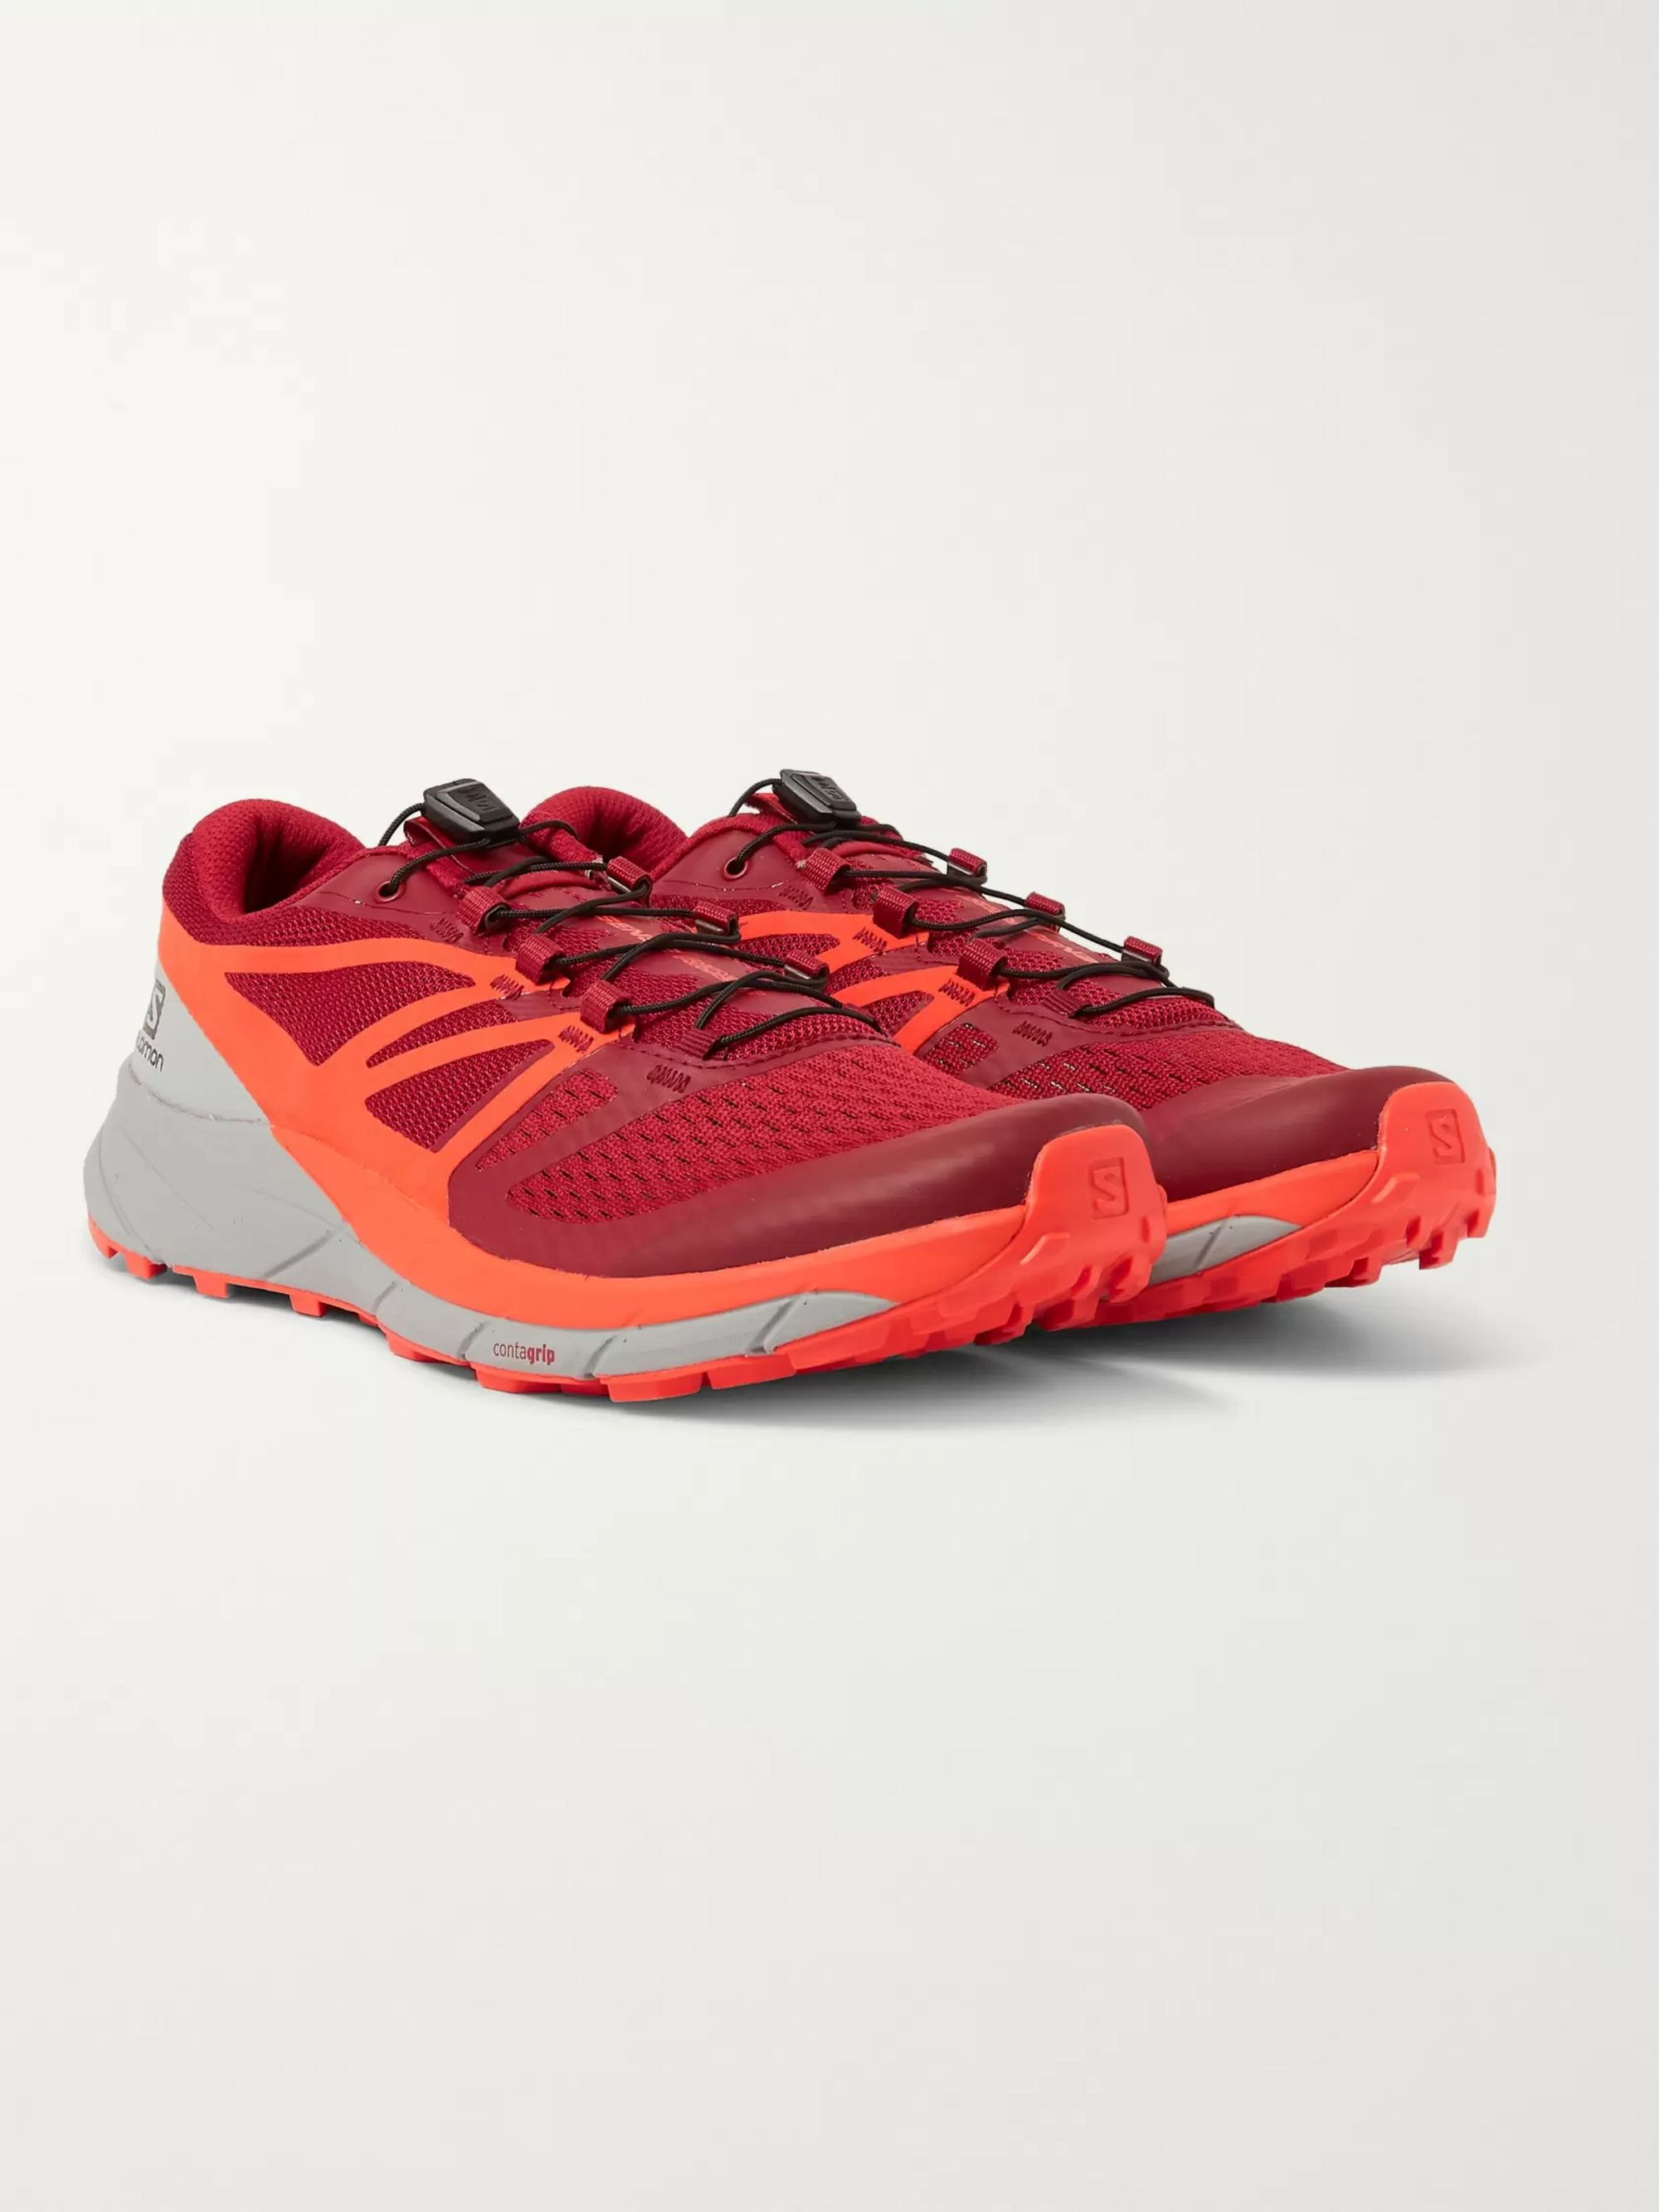 Salomon Sense Ride 2 Mesh and Rubber Running Sneakers